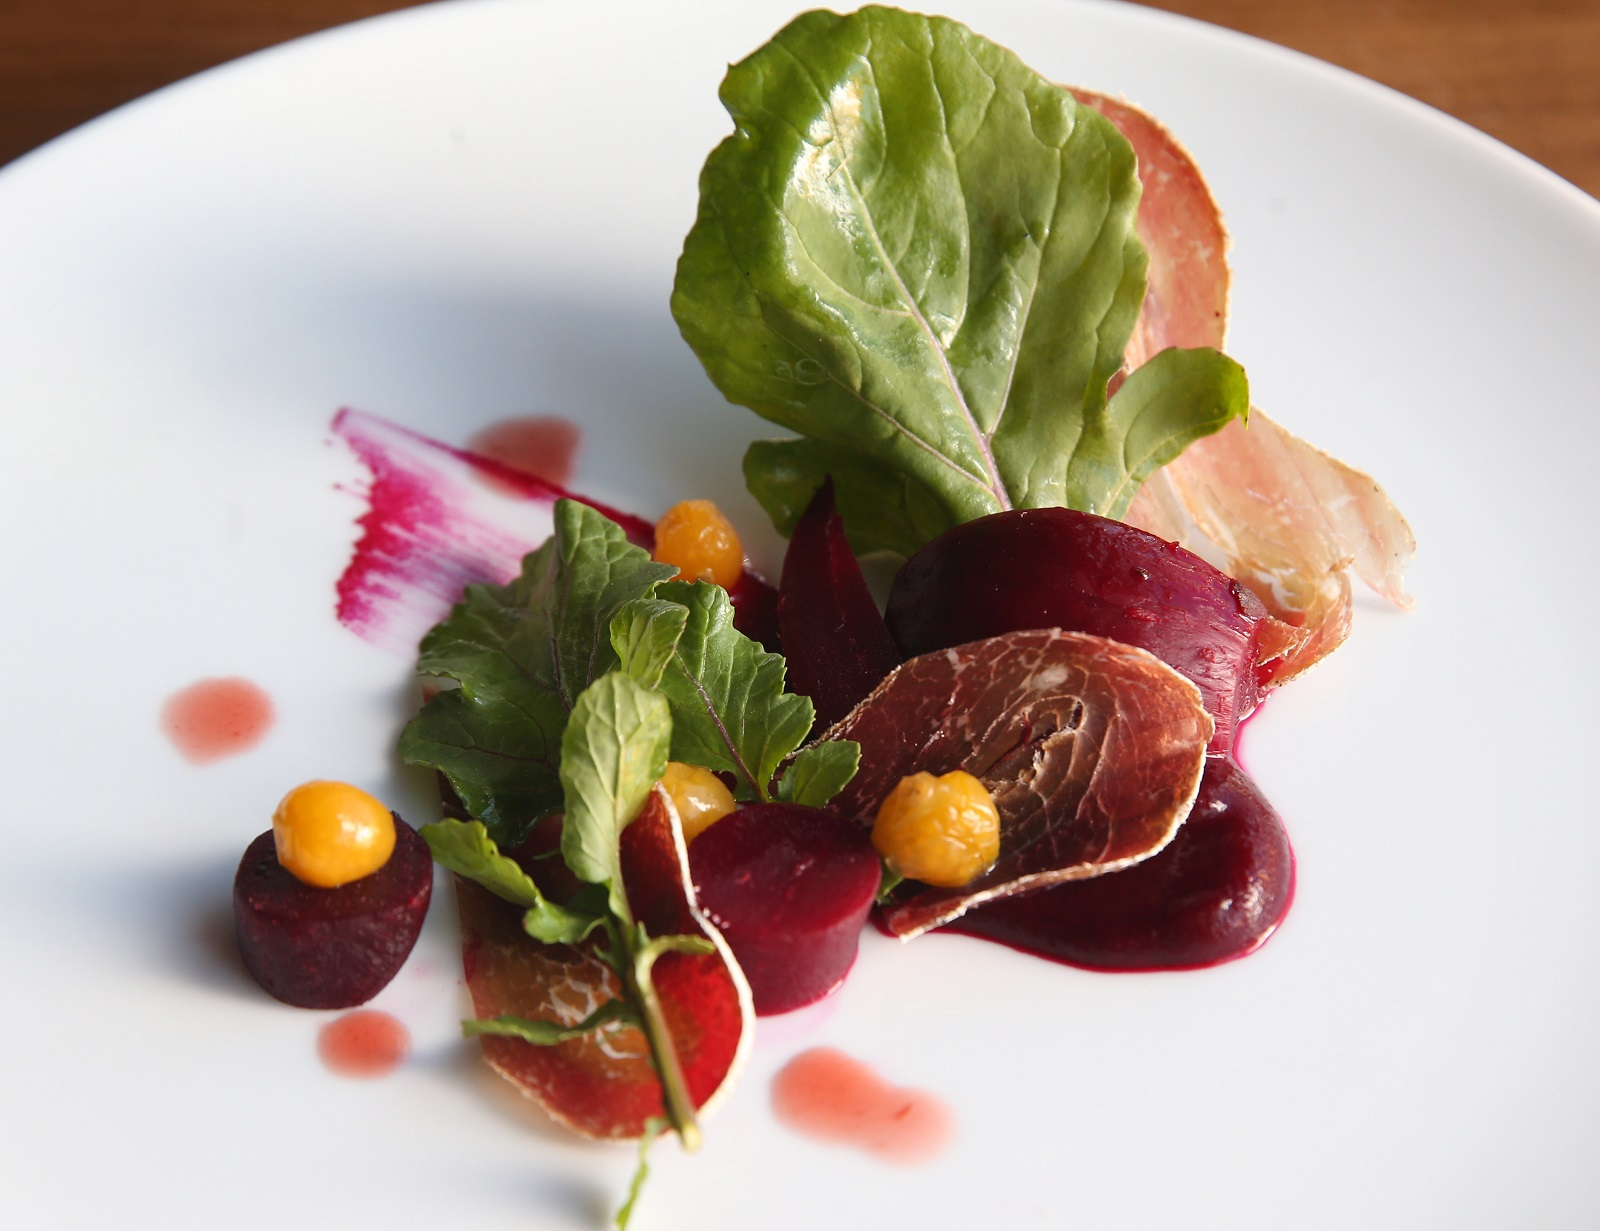 The beet salad is made with beet pudding, bresaola, pickled Inca berry and housemade plum vinegar. (Sharon Cantillon/Buffalo News)